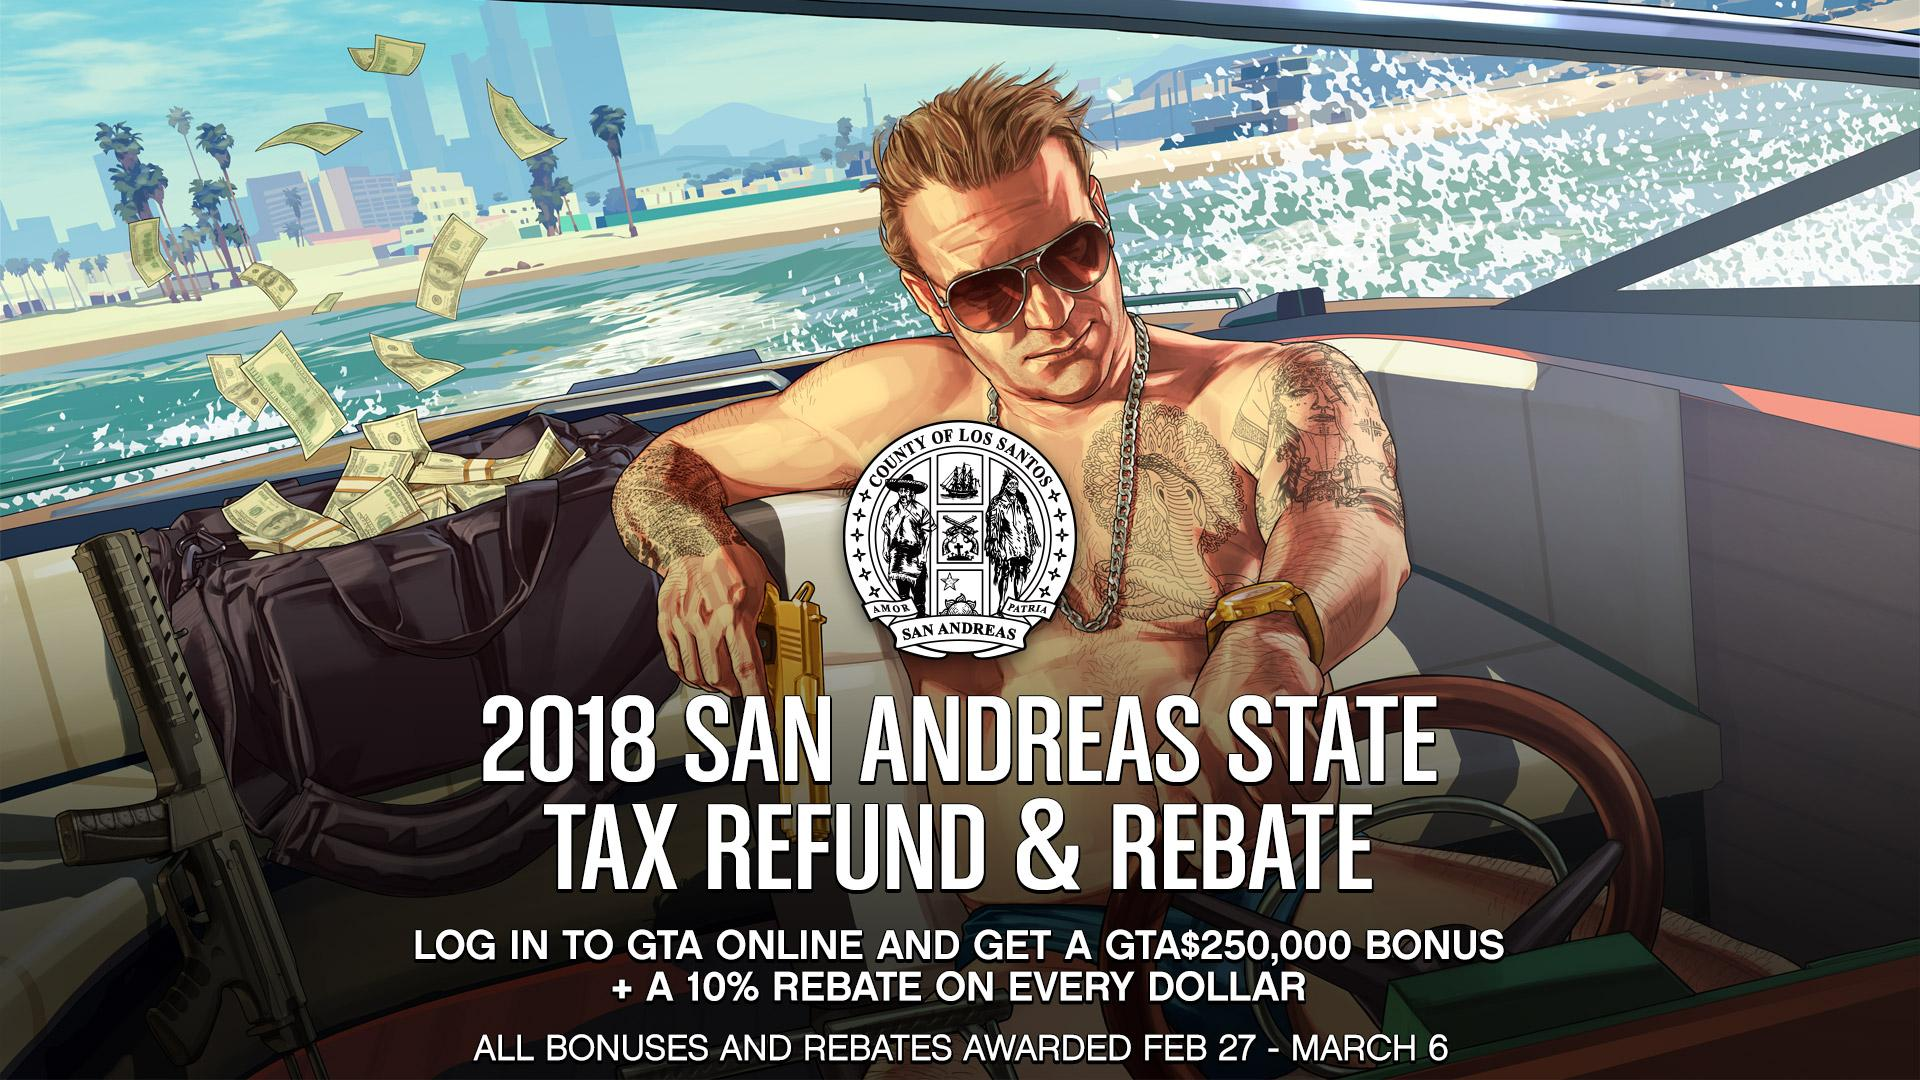 It's Tax Season, And Everyone Is Getting A Refund